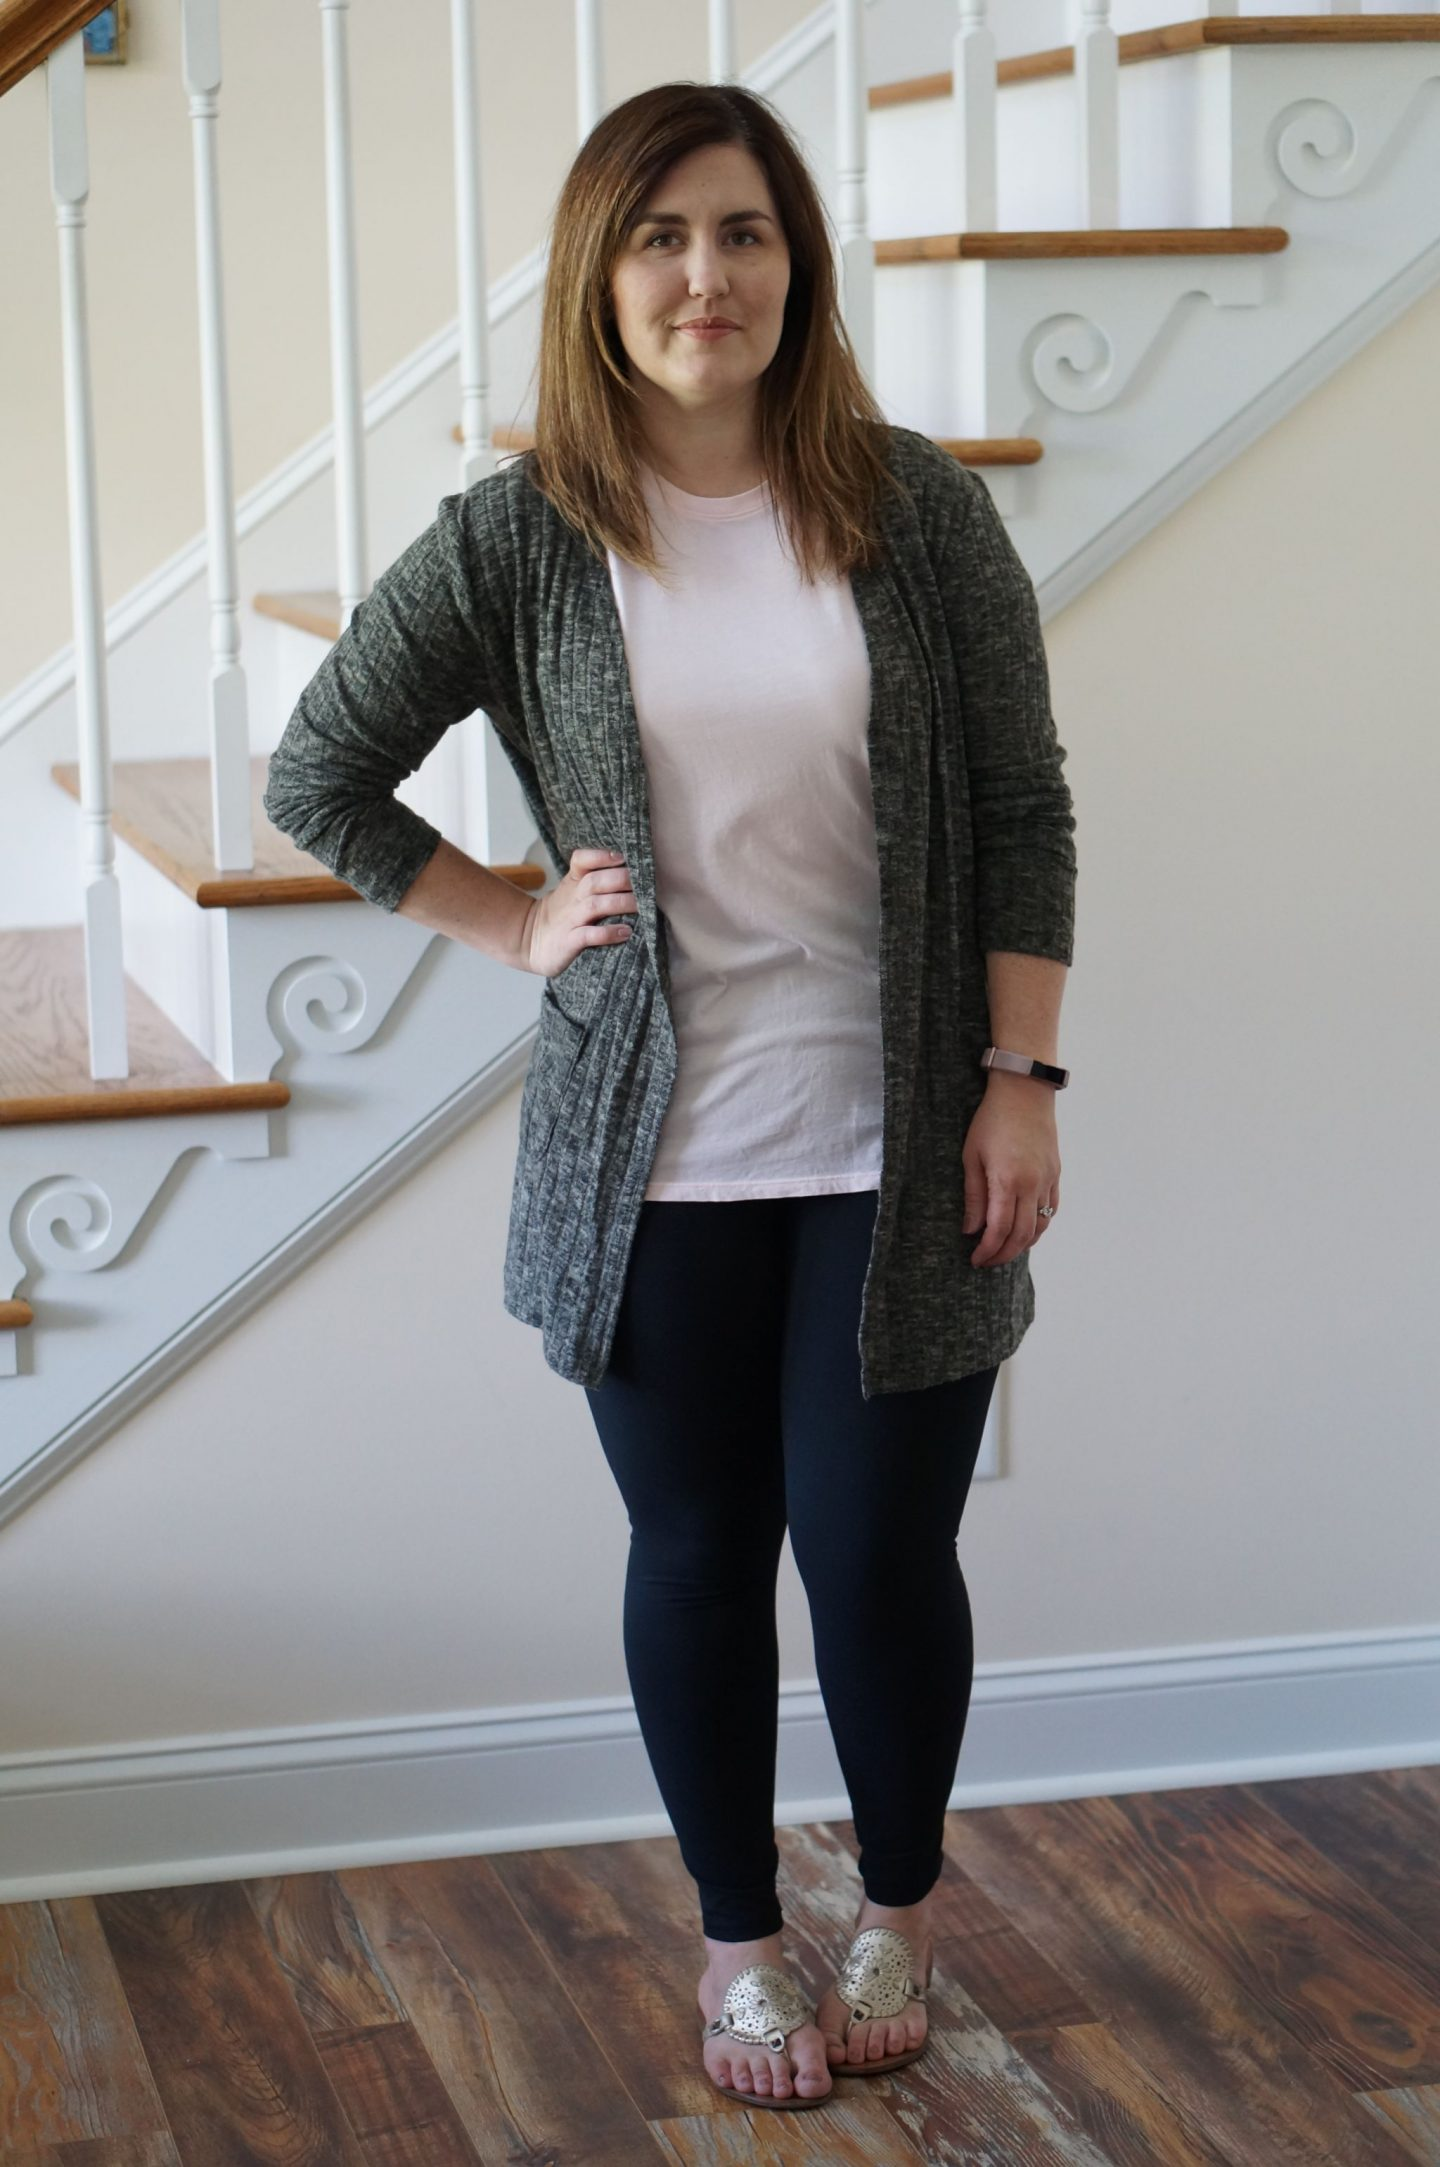 Popular North Carolina style blogger Rebecca Lately shares her September Stitch Fix outfits. Check out what she got and what she kept!